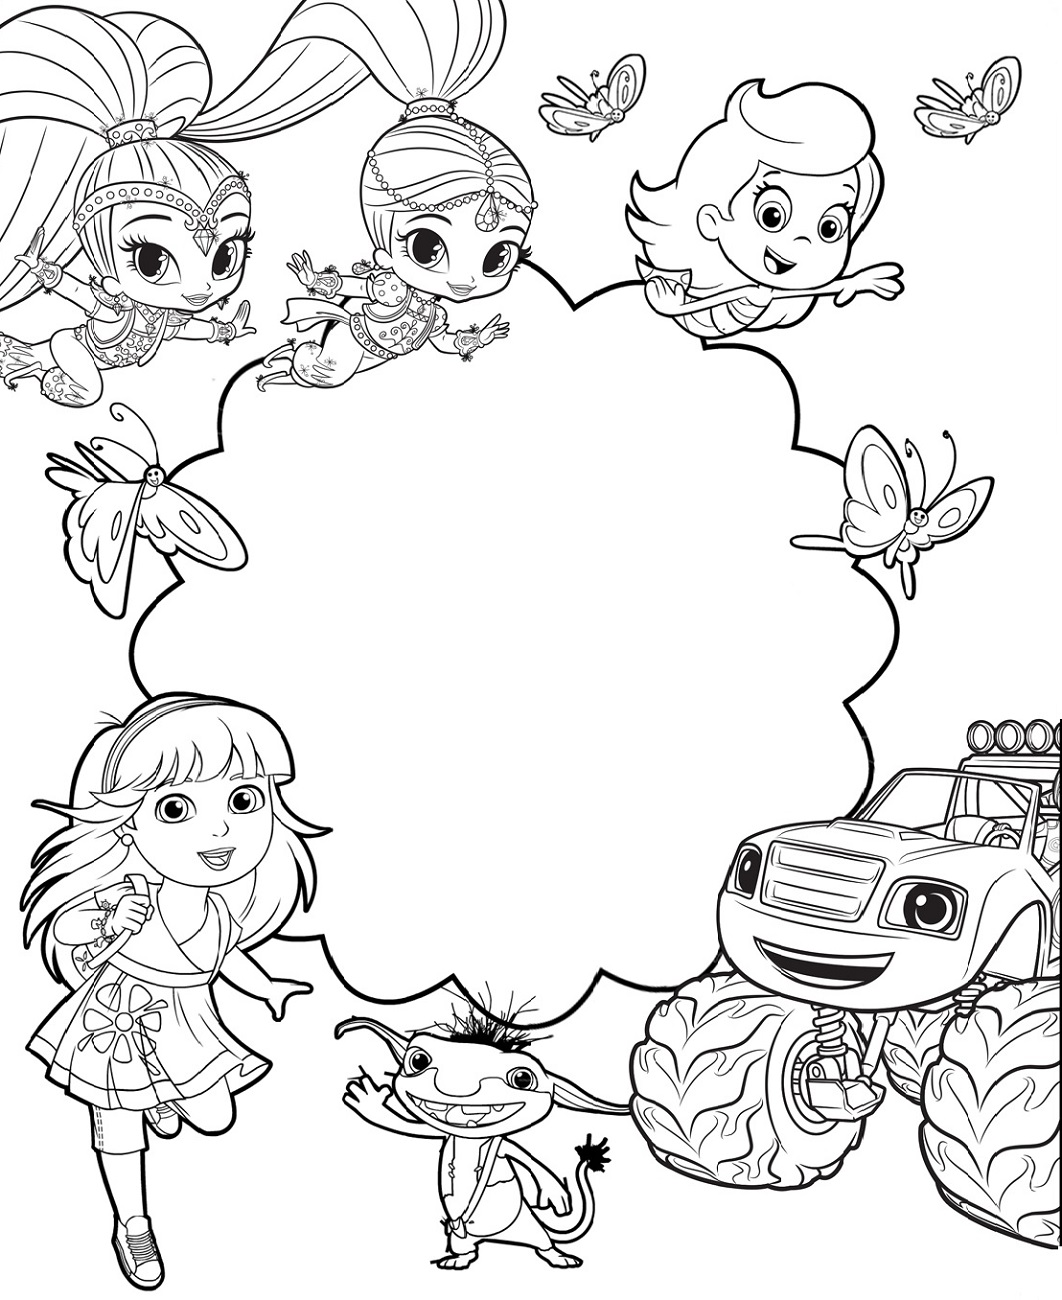 nick jr coloring pages nick jr and friend